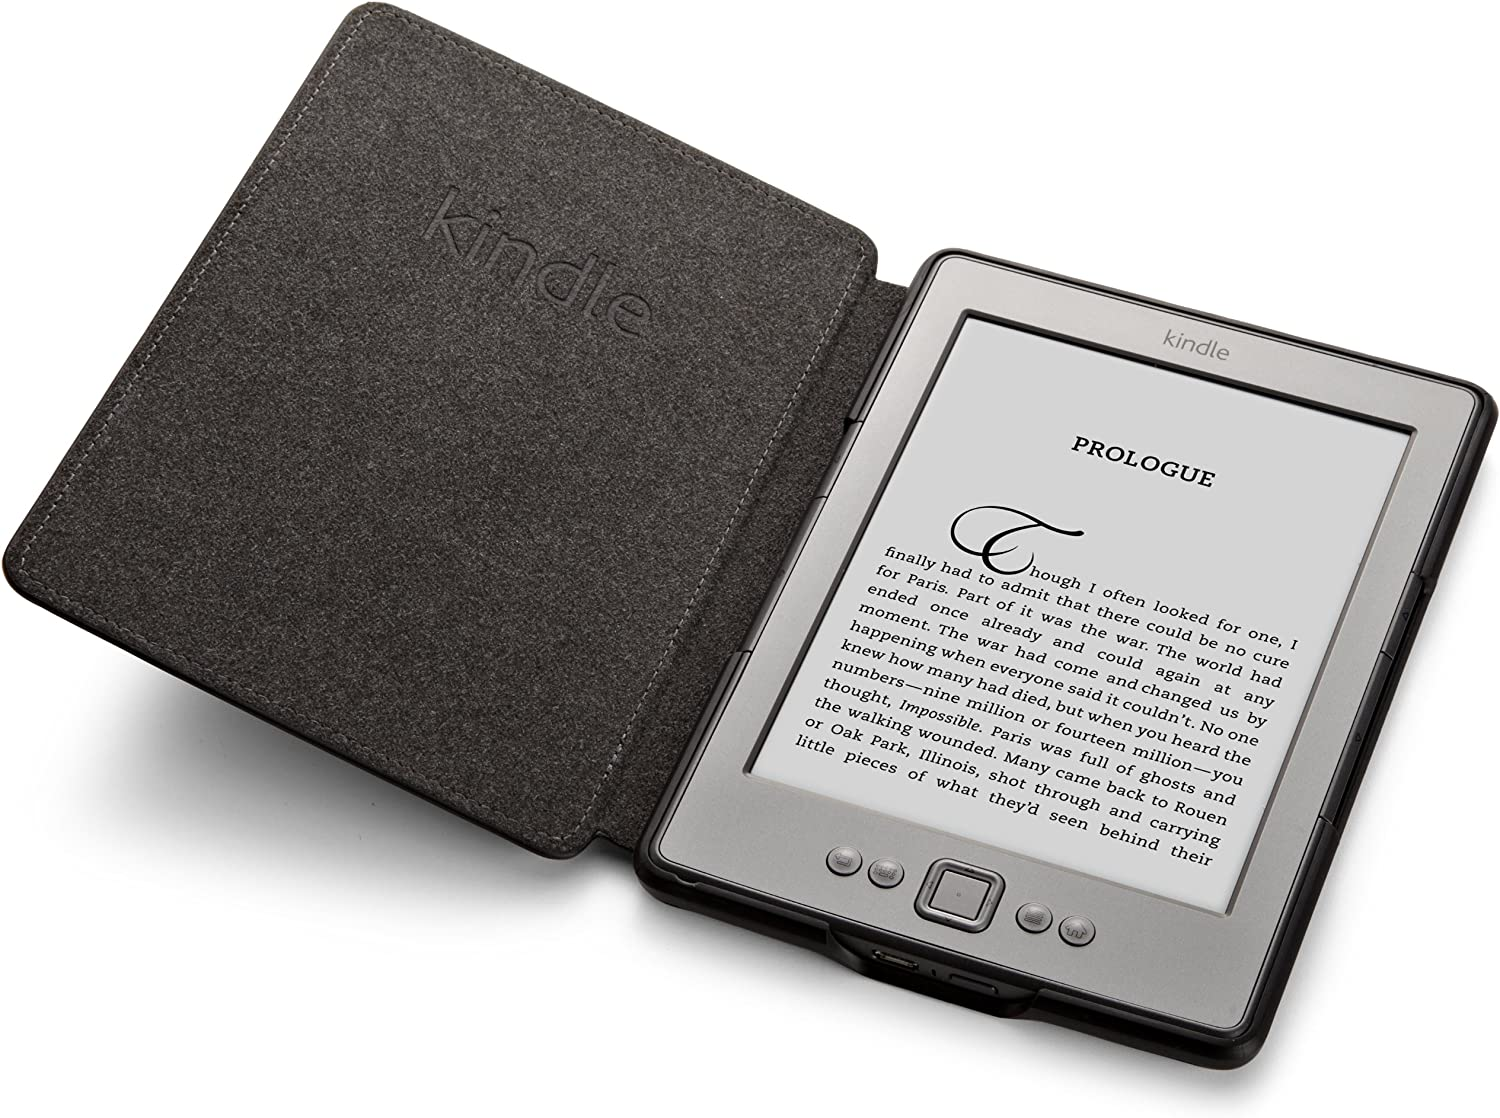 Olive Green Kindle Leather Cover does not fit Kindle Paperwhite